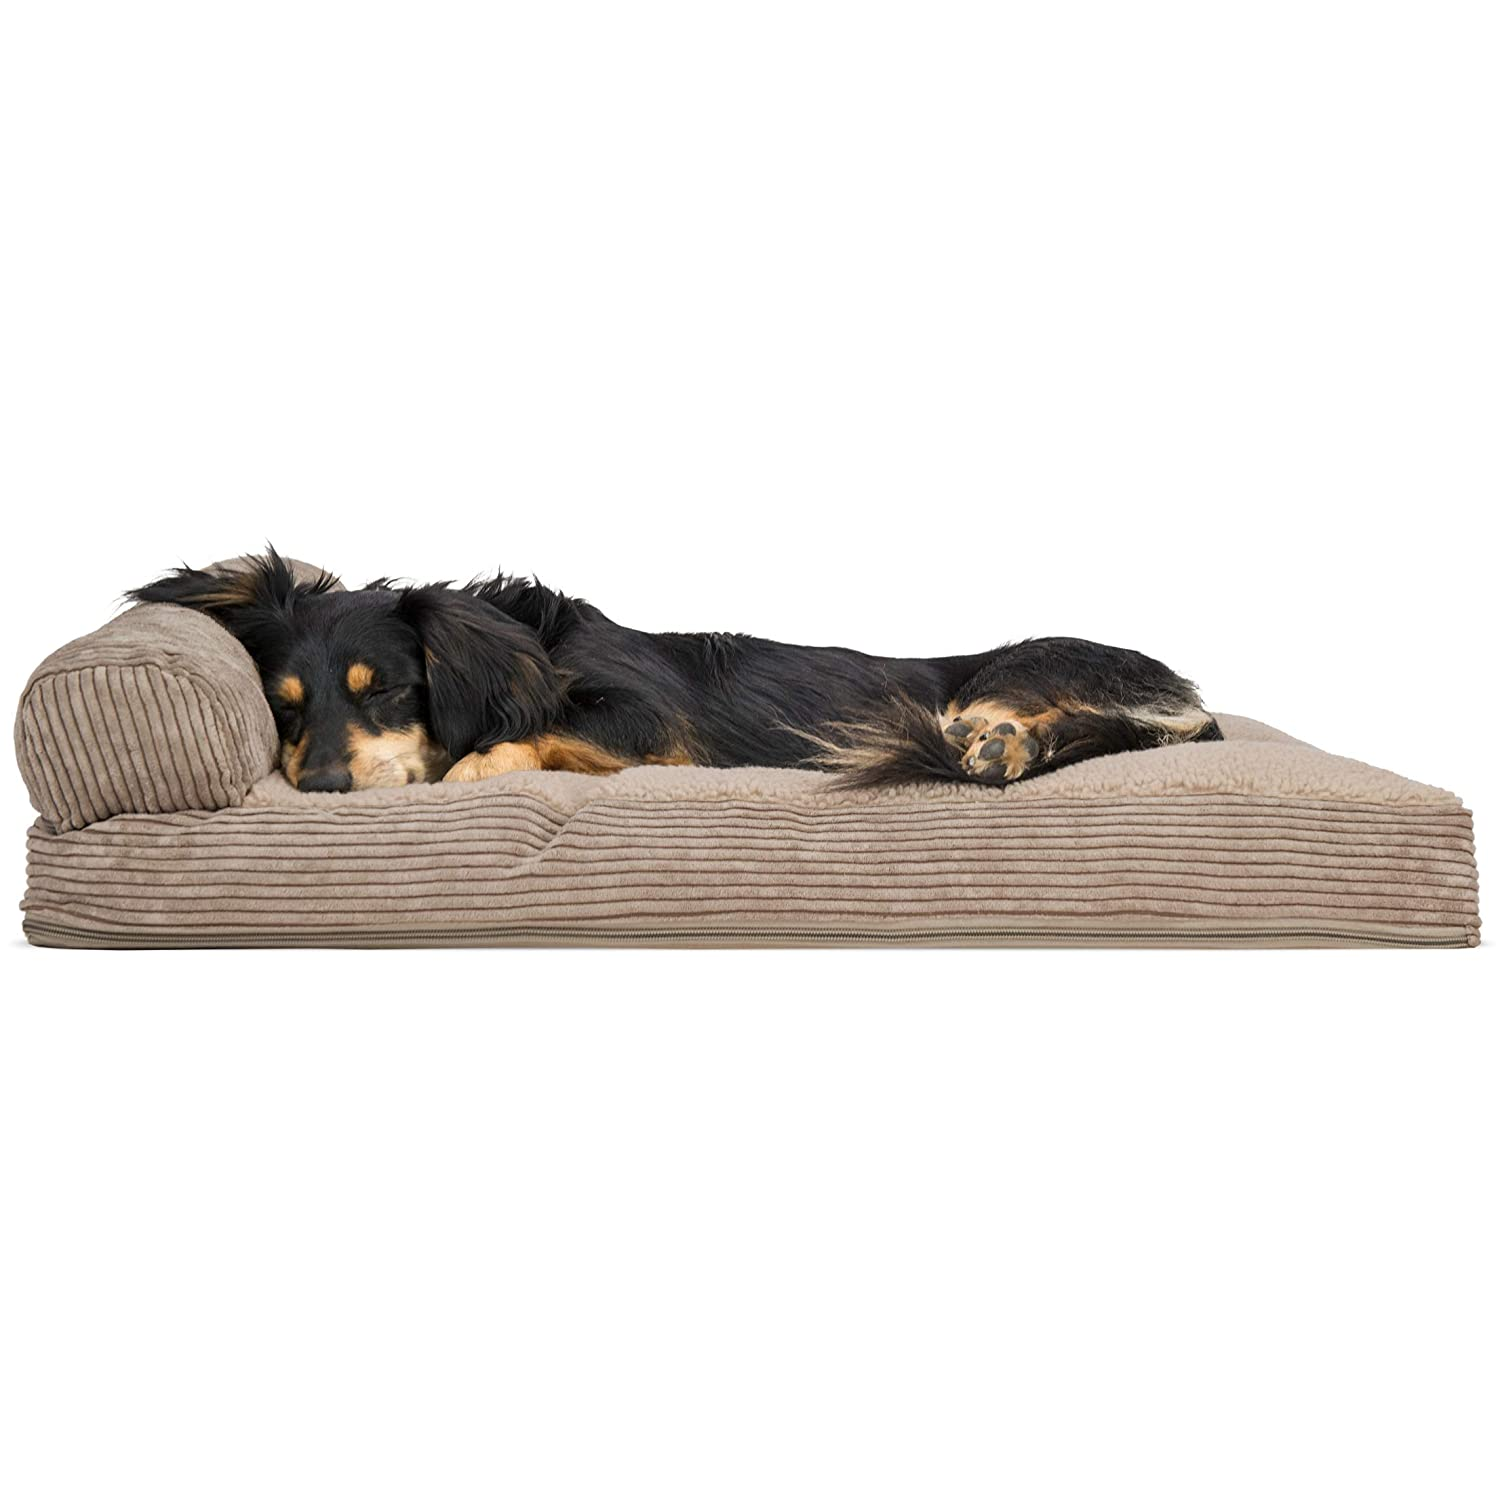 One Sided  Sandstone MediumFurhaven Pet Dog Bed   Quilted Fleece & Print Suede Chaise Lounge Pillow SofaStyle Pet Bed for Dogs & Cats, Espresso, Large